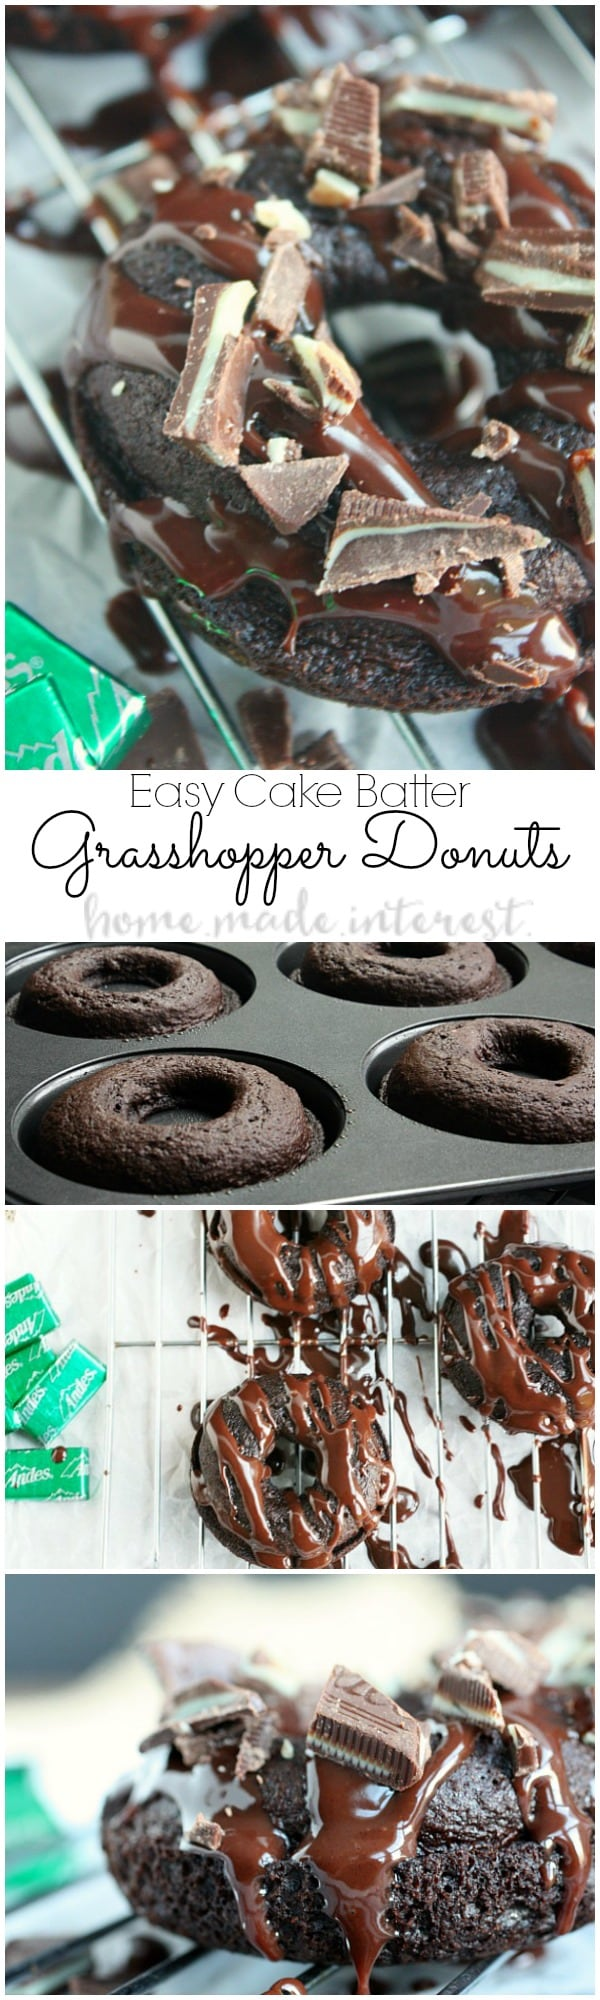 These grasshopper donuts are just the right mix of chocolate and mint. This is an easy dessert (or breakfast!) recipe for St. Patrick's day!